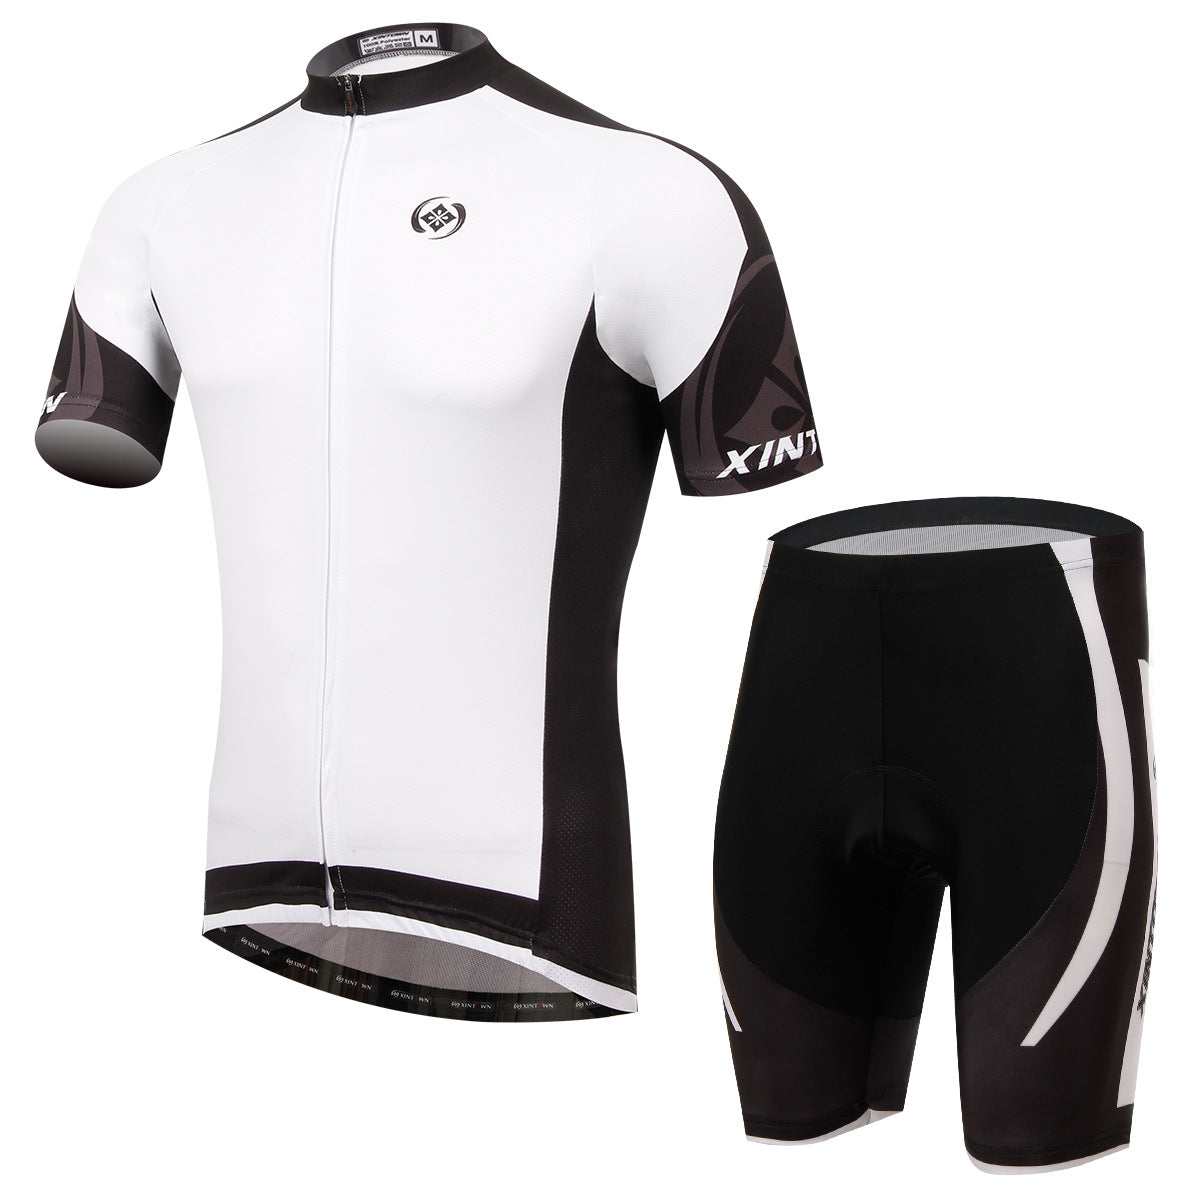 Costbuys  Dimon White Green bicycle bike riding jersey short-sleeved suit wear cycling suits sweat pants - White / 3XL